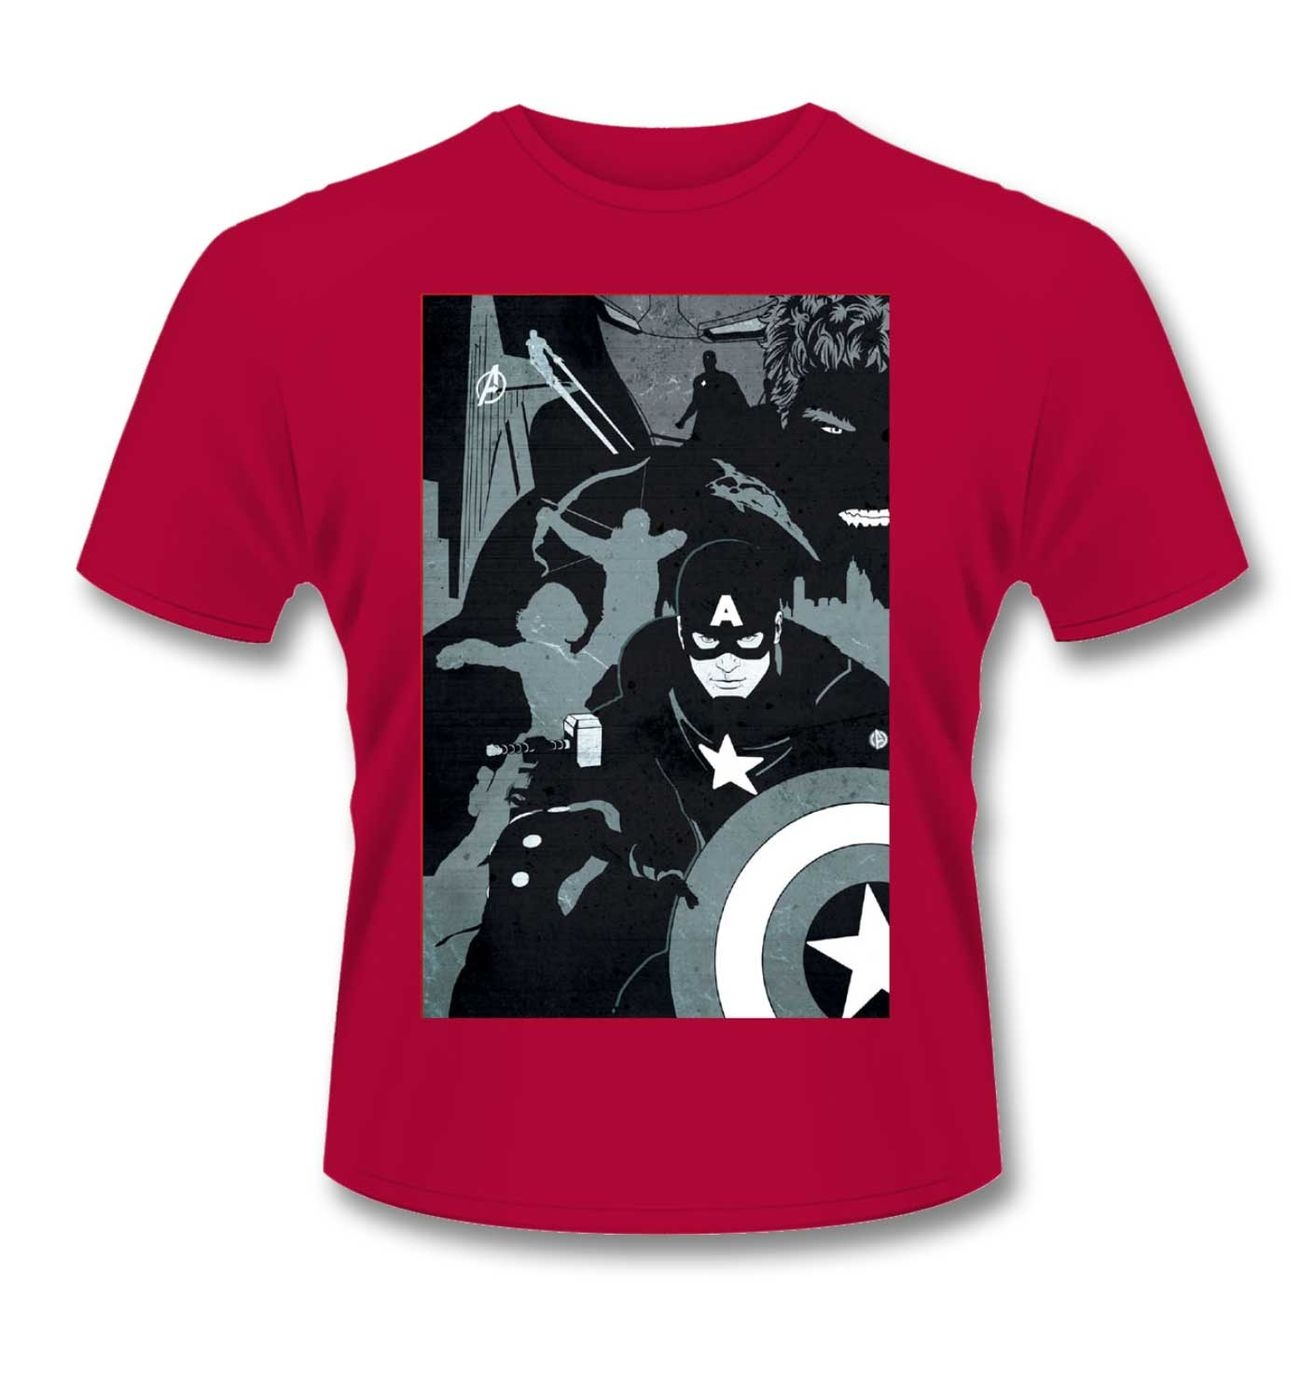 Avengers Silhouette t-shirt - Official Avengers Age Of Ultron tshirt